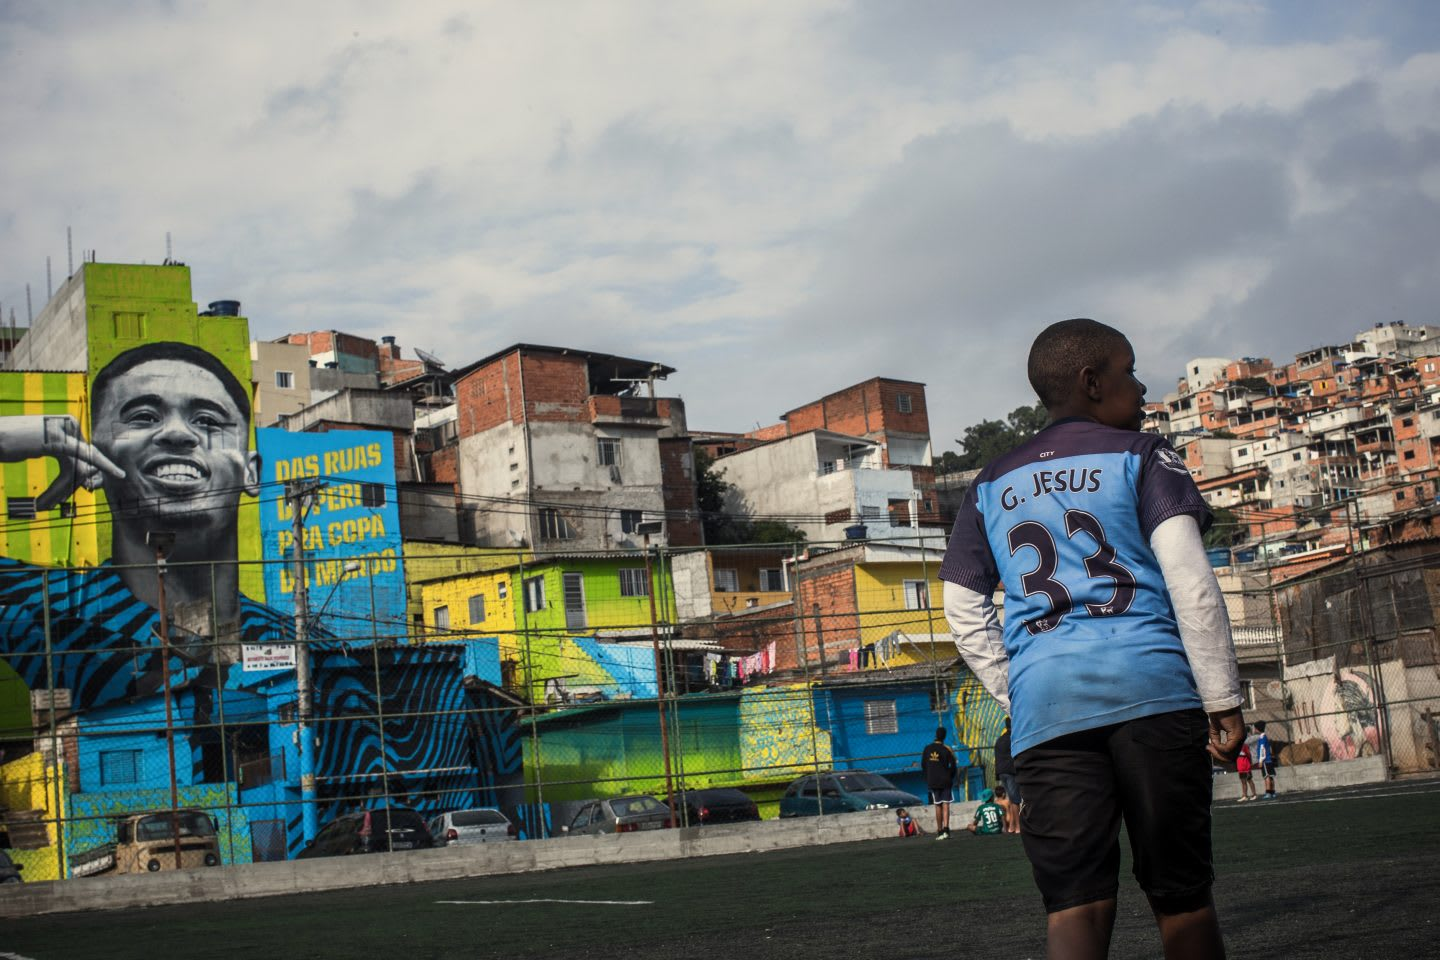 A young child walks across a football pitch in his neighborhood in Brazil beside a mural of Gabriel Jesus. Gabriel Jesus, soccer, street art, mural, brazil